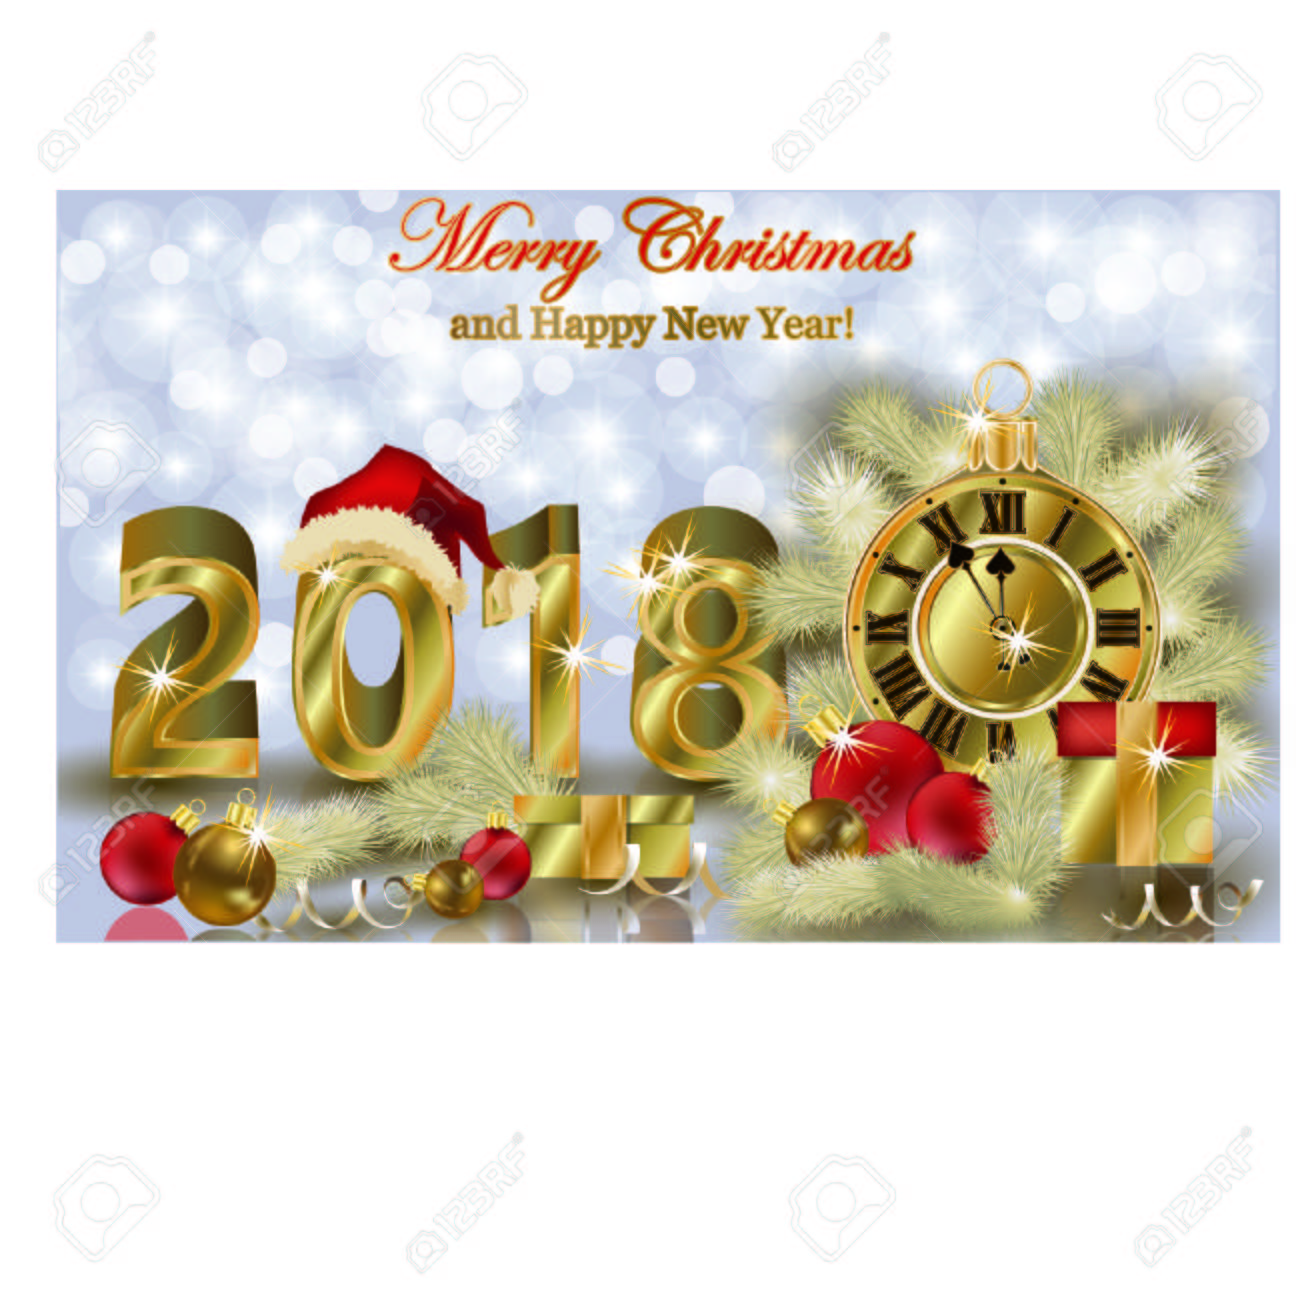 merry christmas and happy new year 2018 wallpaper vector illustration stock vector 88281795